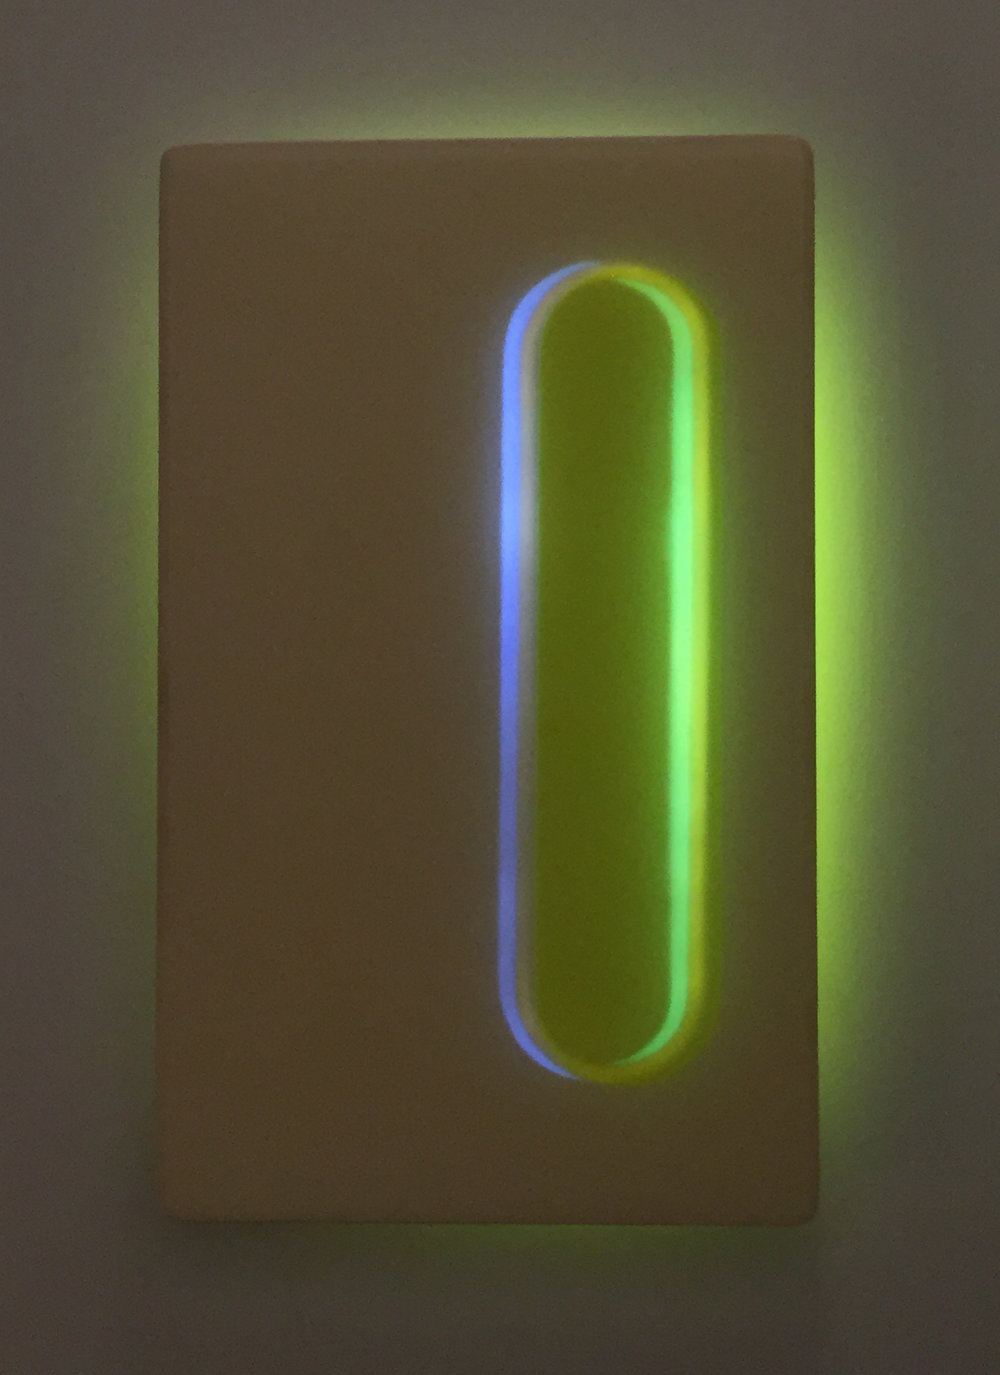 Light sculpture made of resin, acrylic, wood, and LED, with blue and green colors entitled Beacon 2 Night.